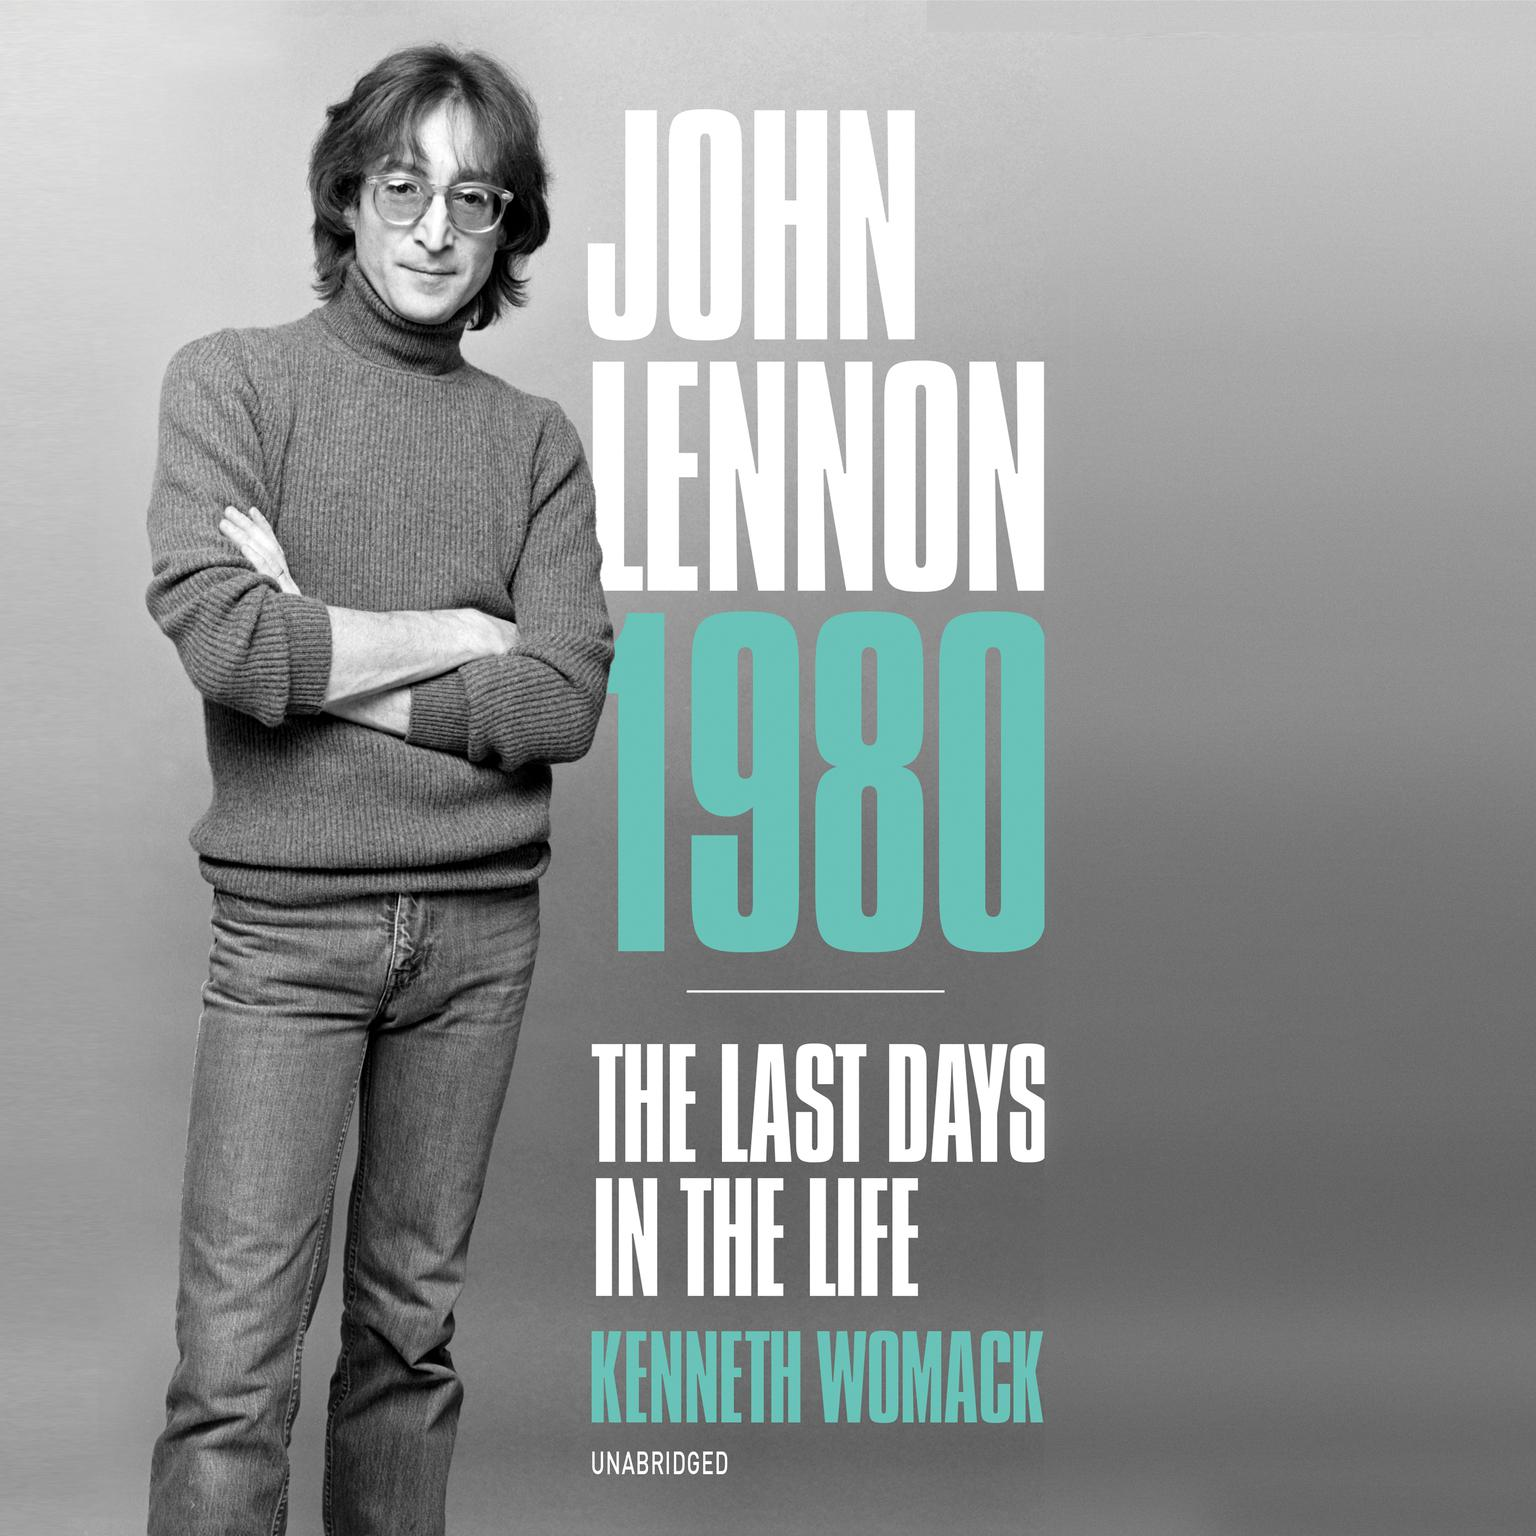 John Lennon 1980: The Last Days in the Life Audiobook, by Kenneth Womack